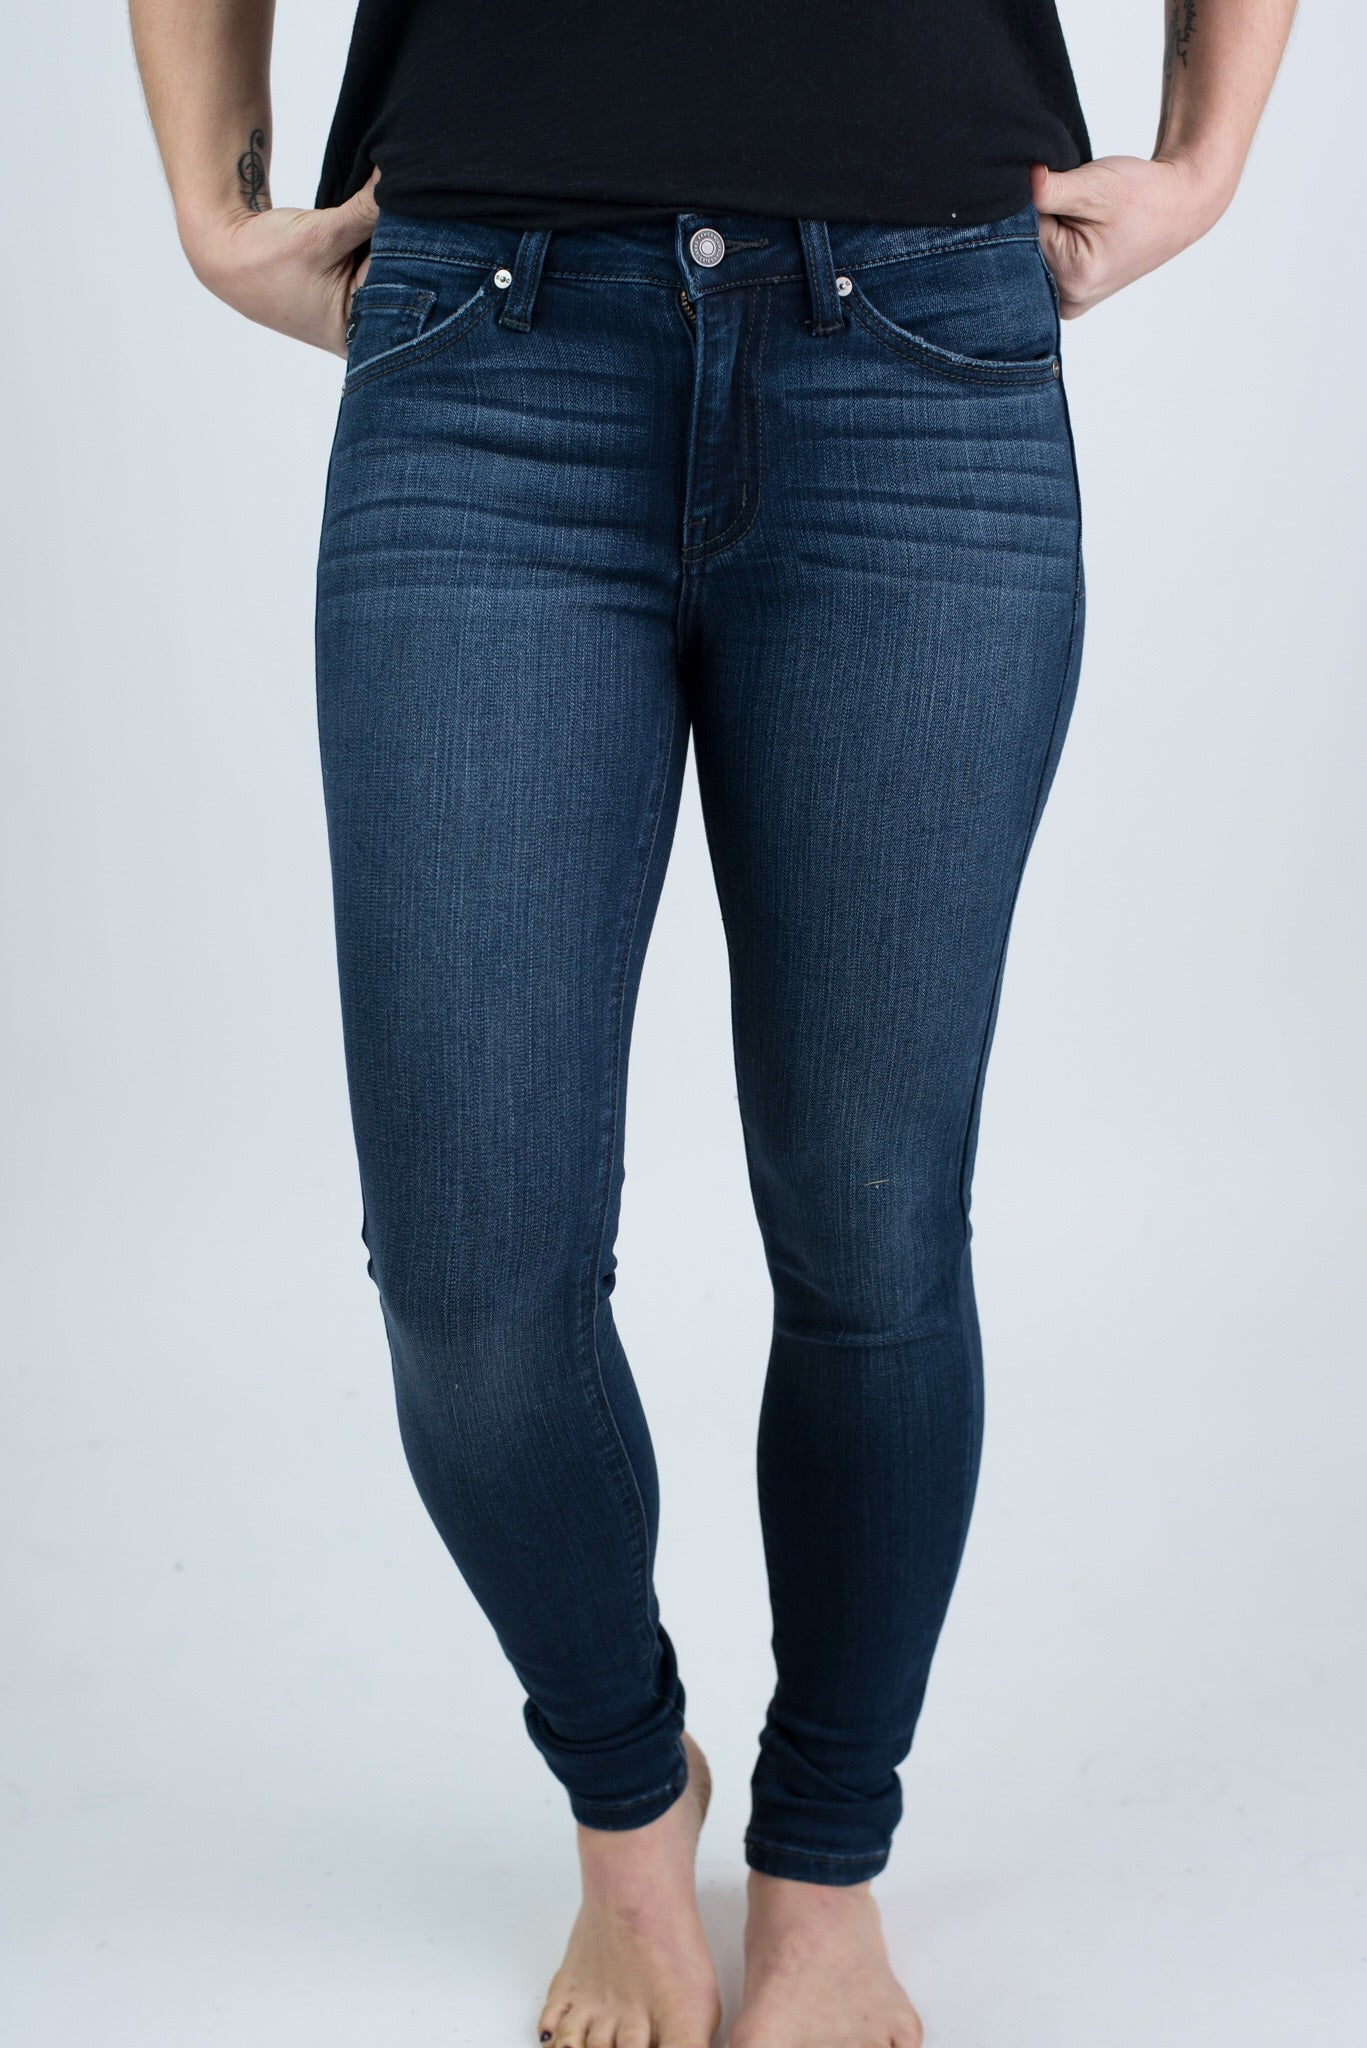 Breaking Records Non Distressed Dark Wash Skinny Jeans